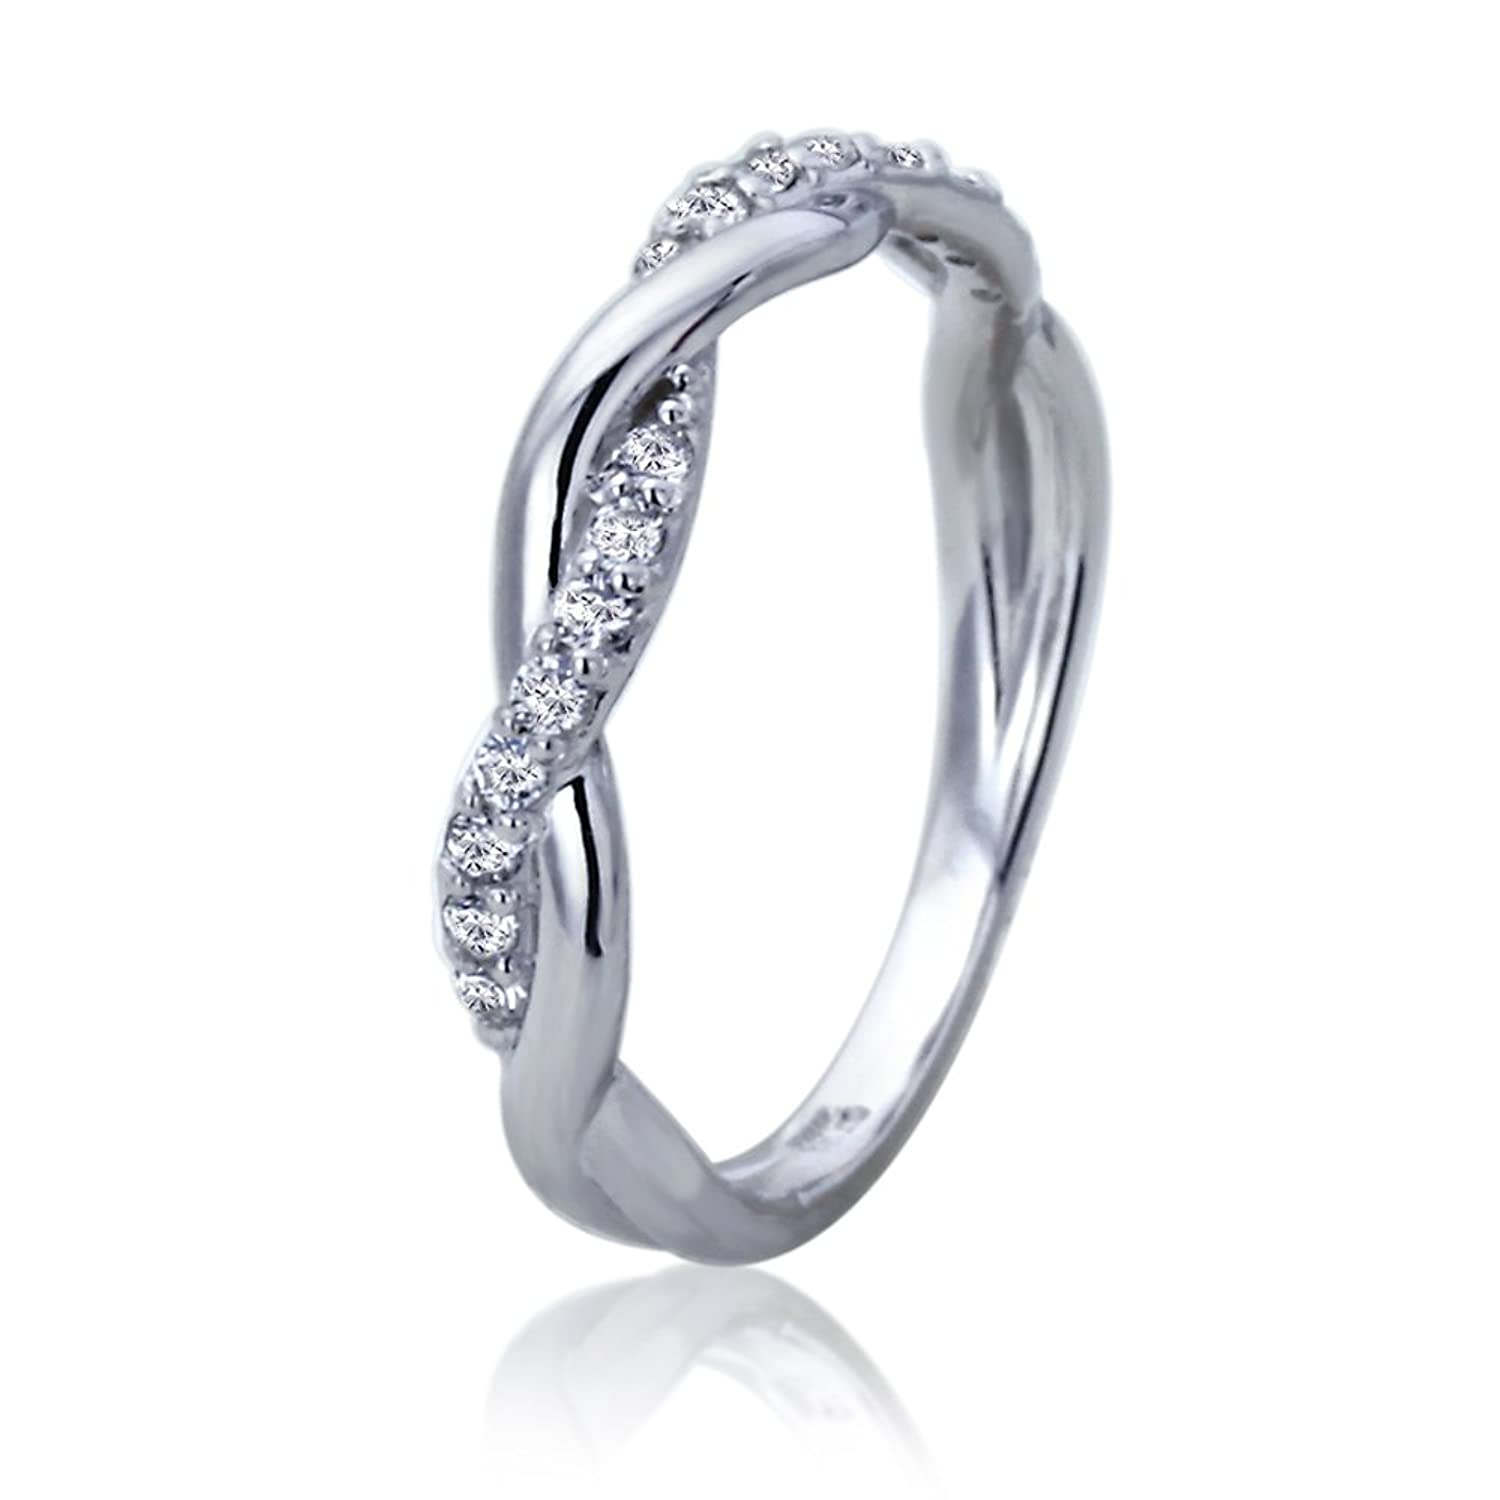 pave petite in mdc diamond from twist gold engagement rings band engagementringsre cfm wedding twisted white ring infinity nyc diamonds